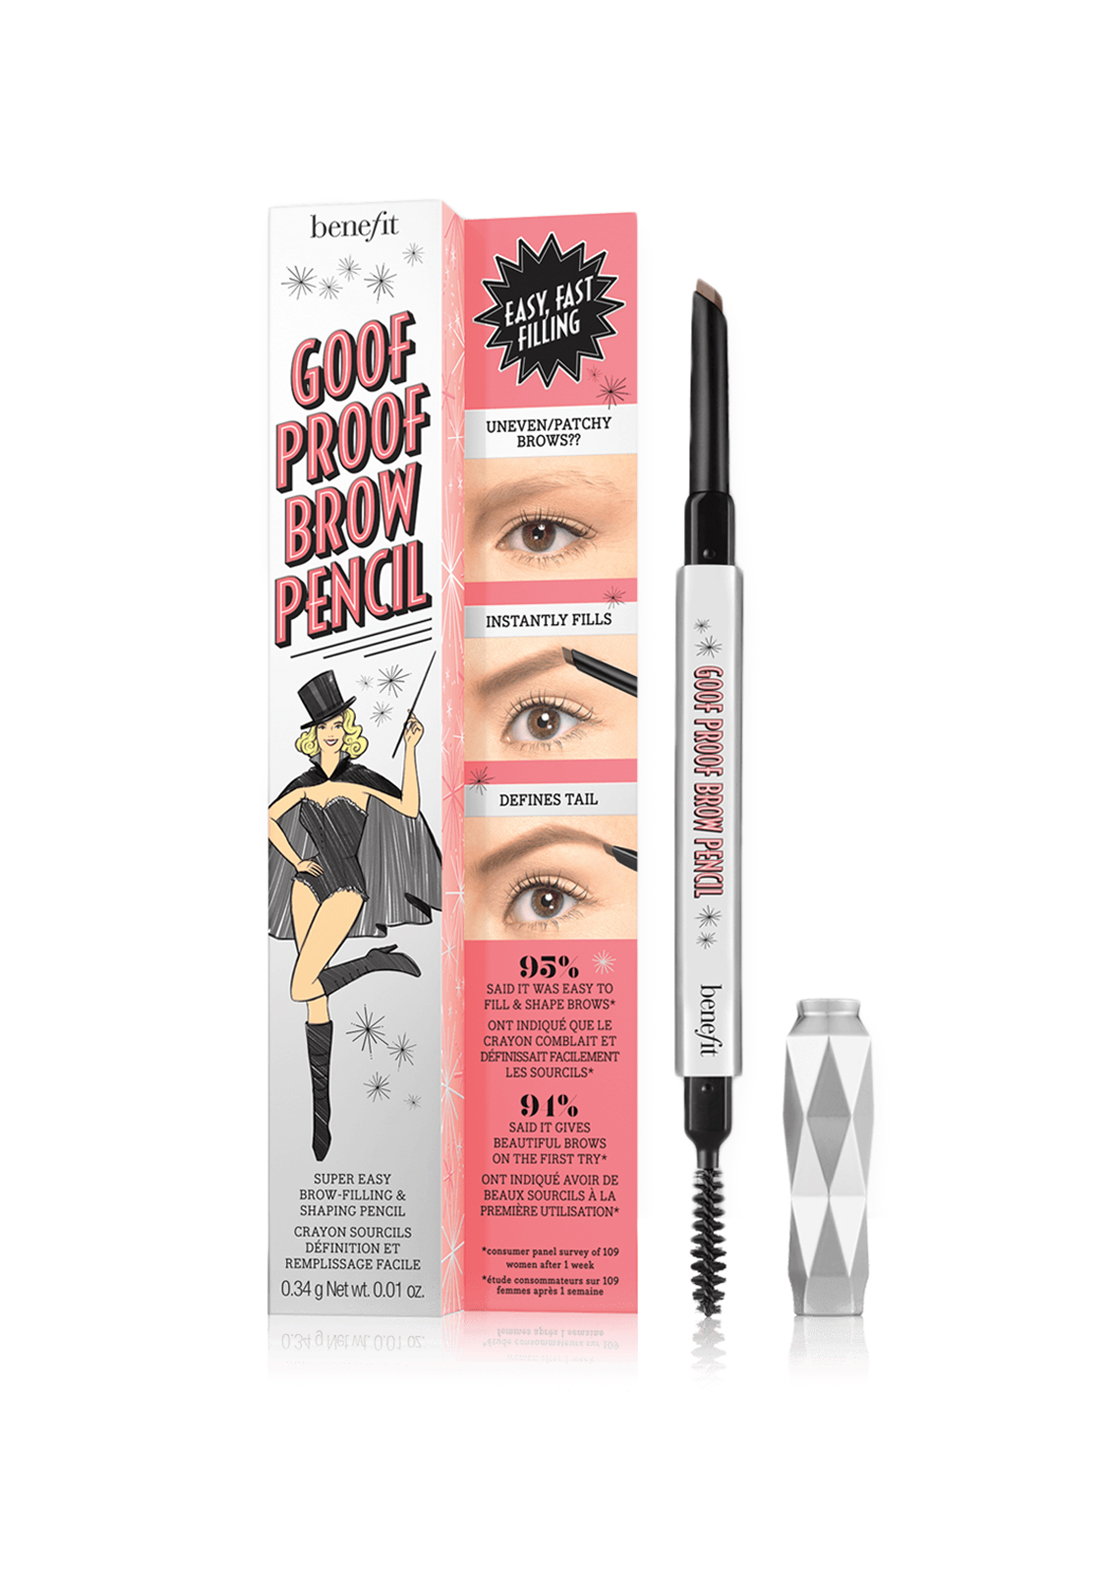 Benefit Goof Proof Eyebrow Pencil